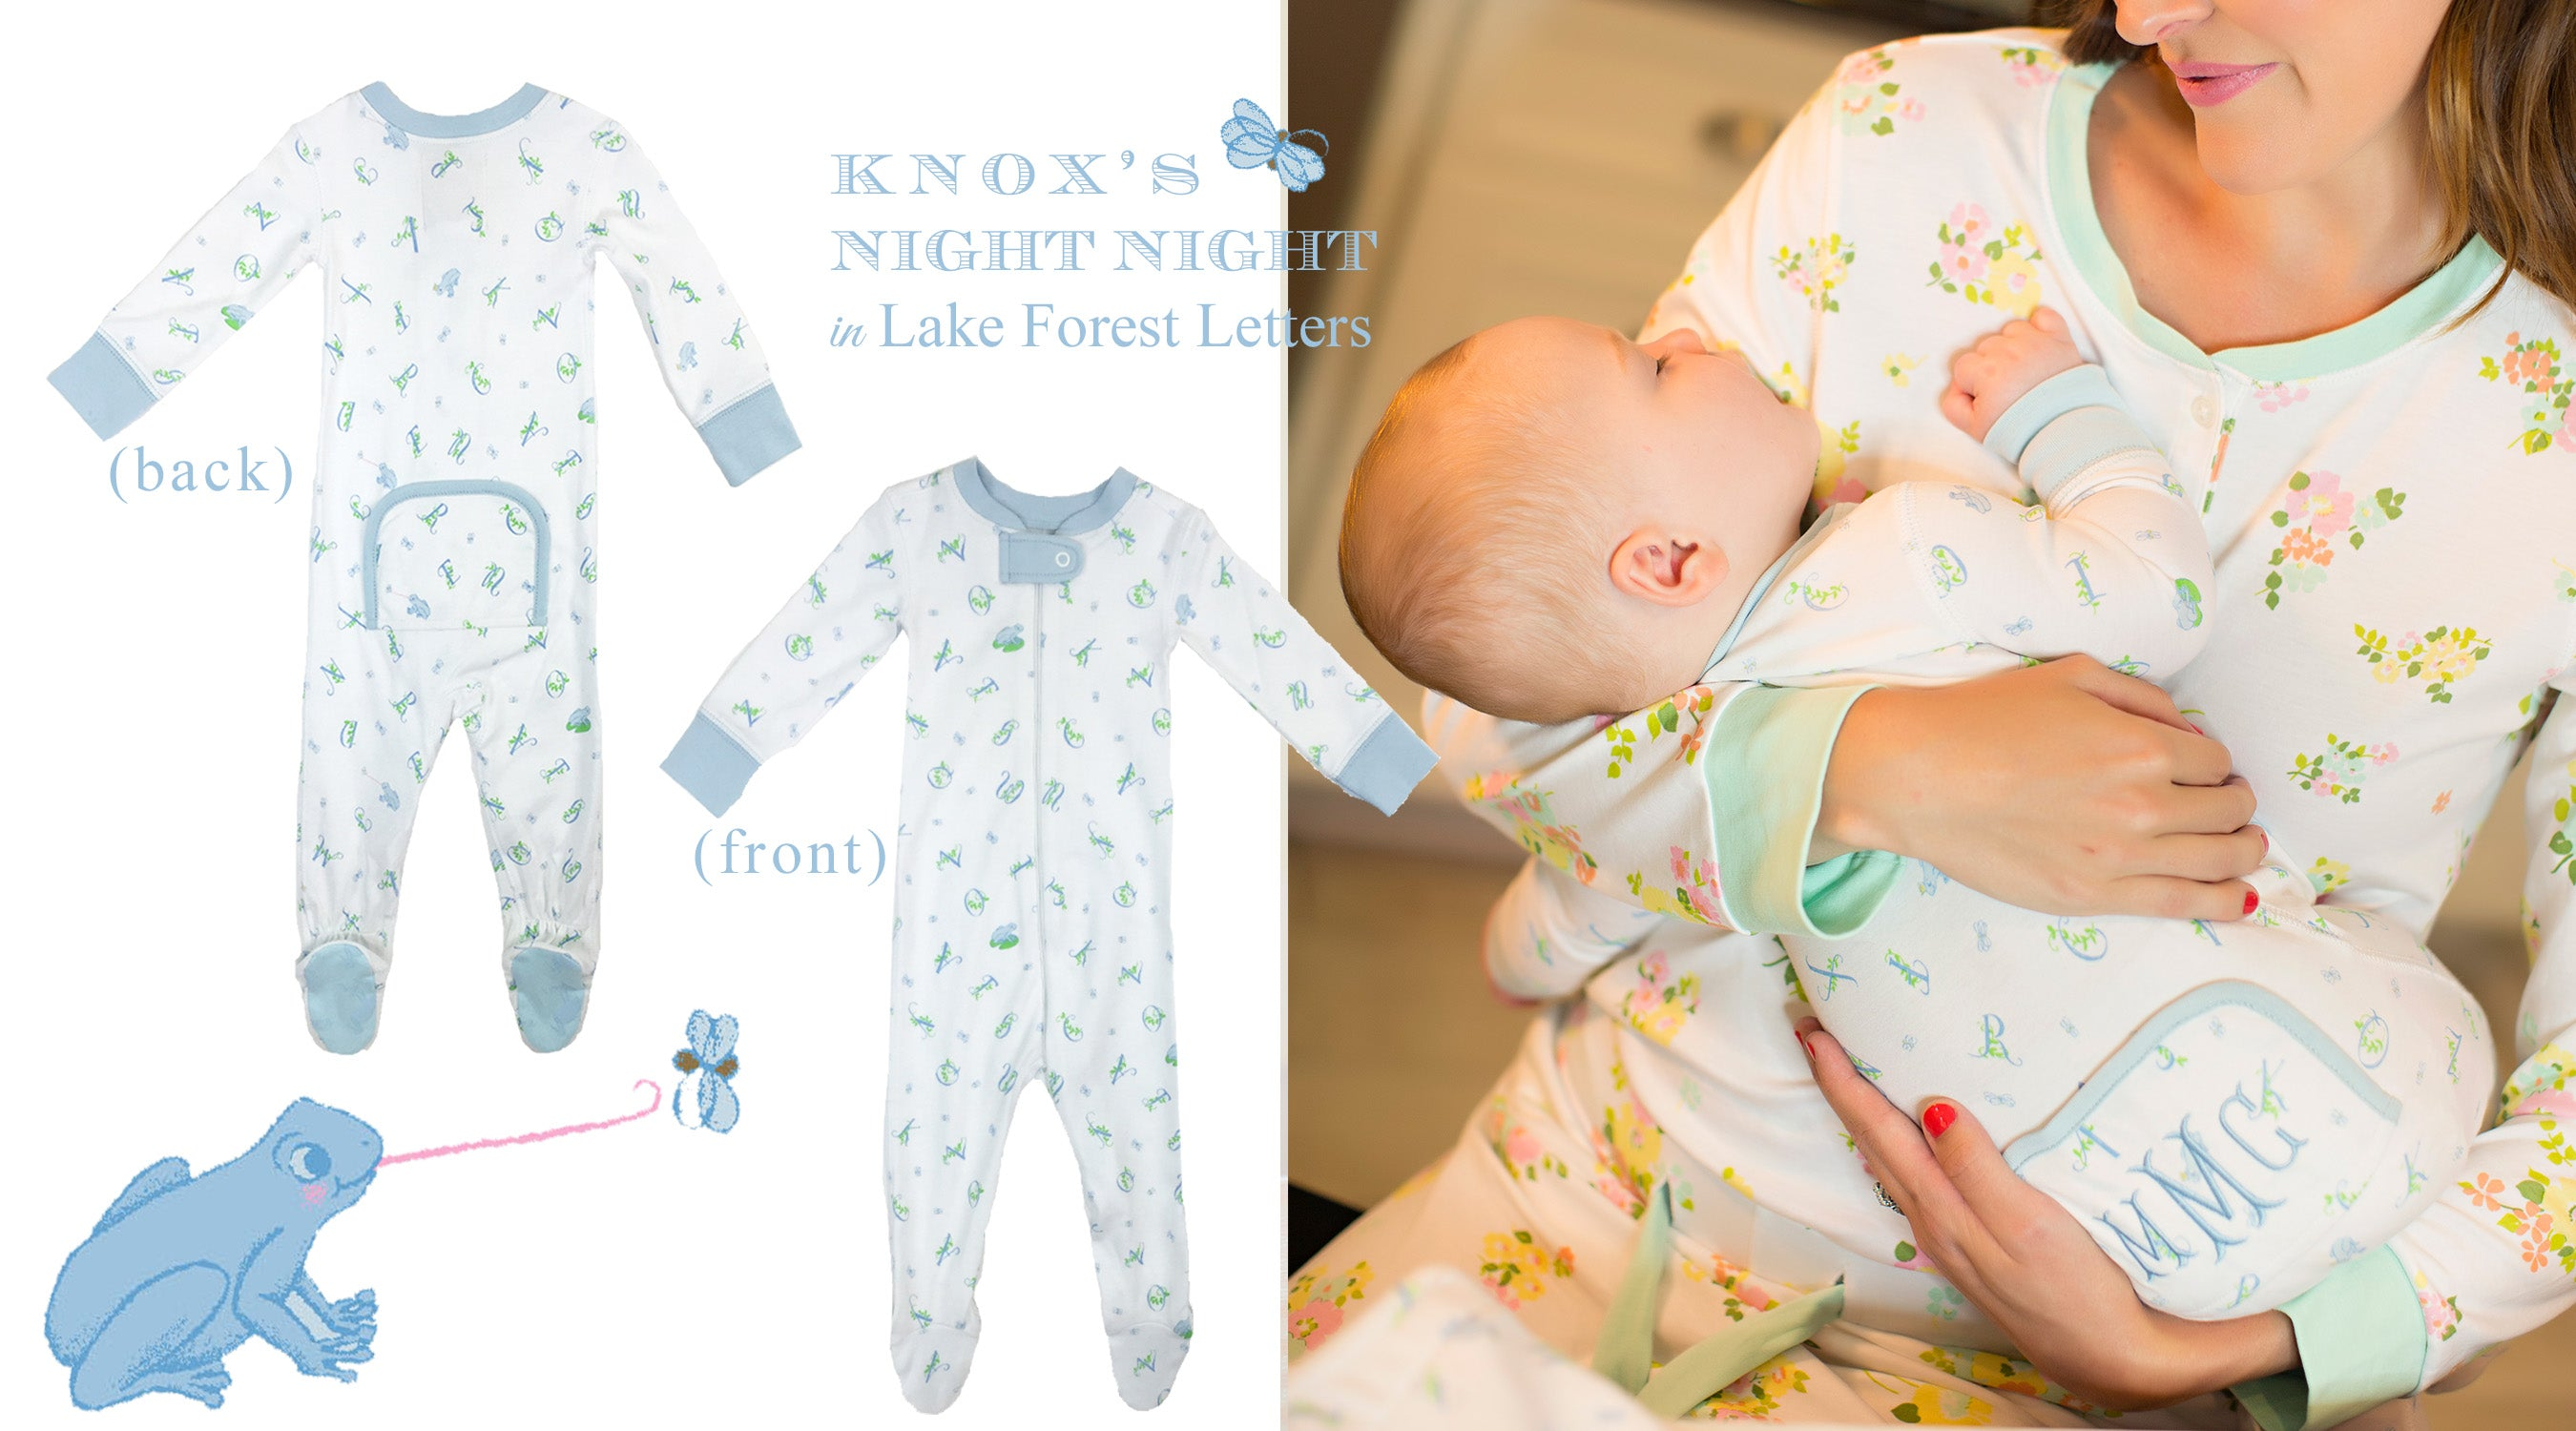 Knox's Night Night in Lake Forest Letters